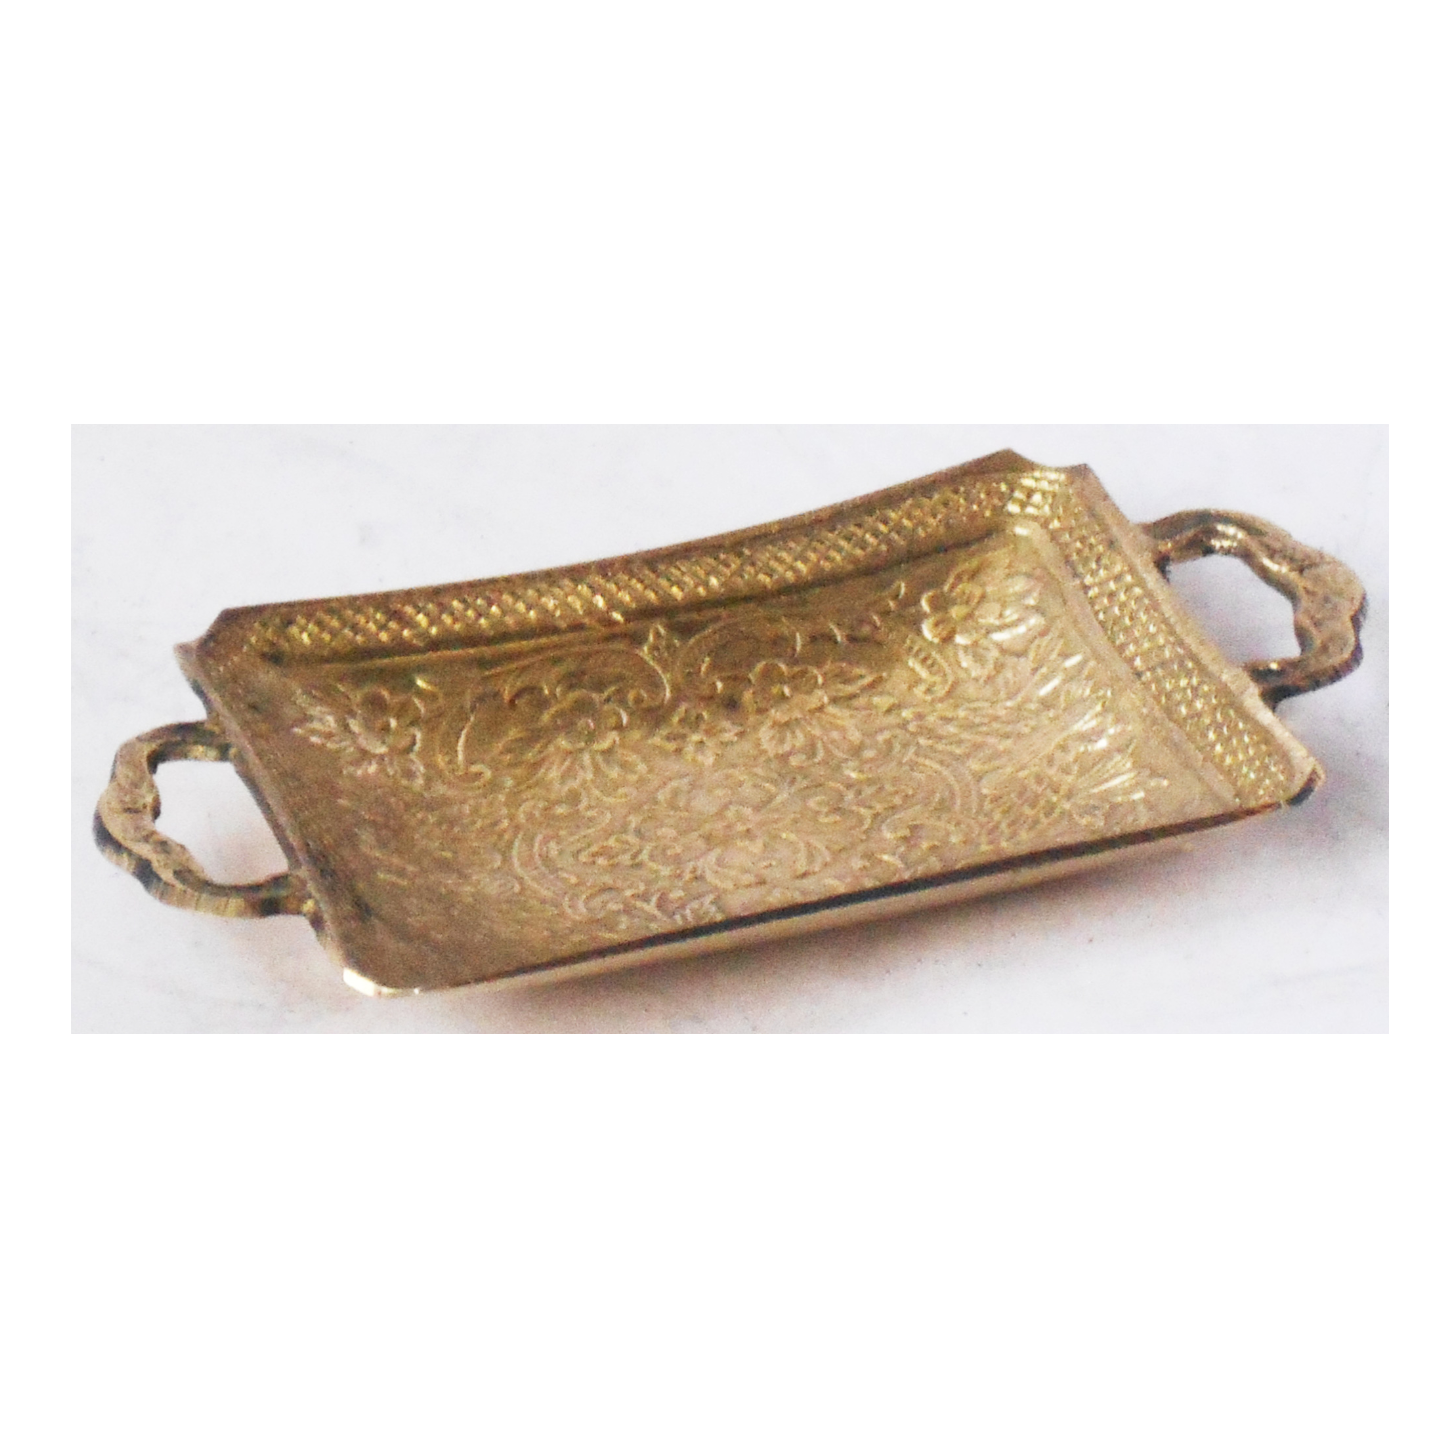 Brass Miniature Tray Toy for Children Playing- 530.5 Inch Z374 C